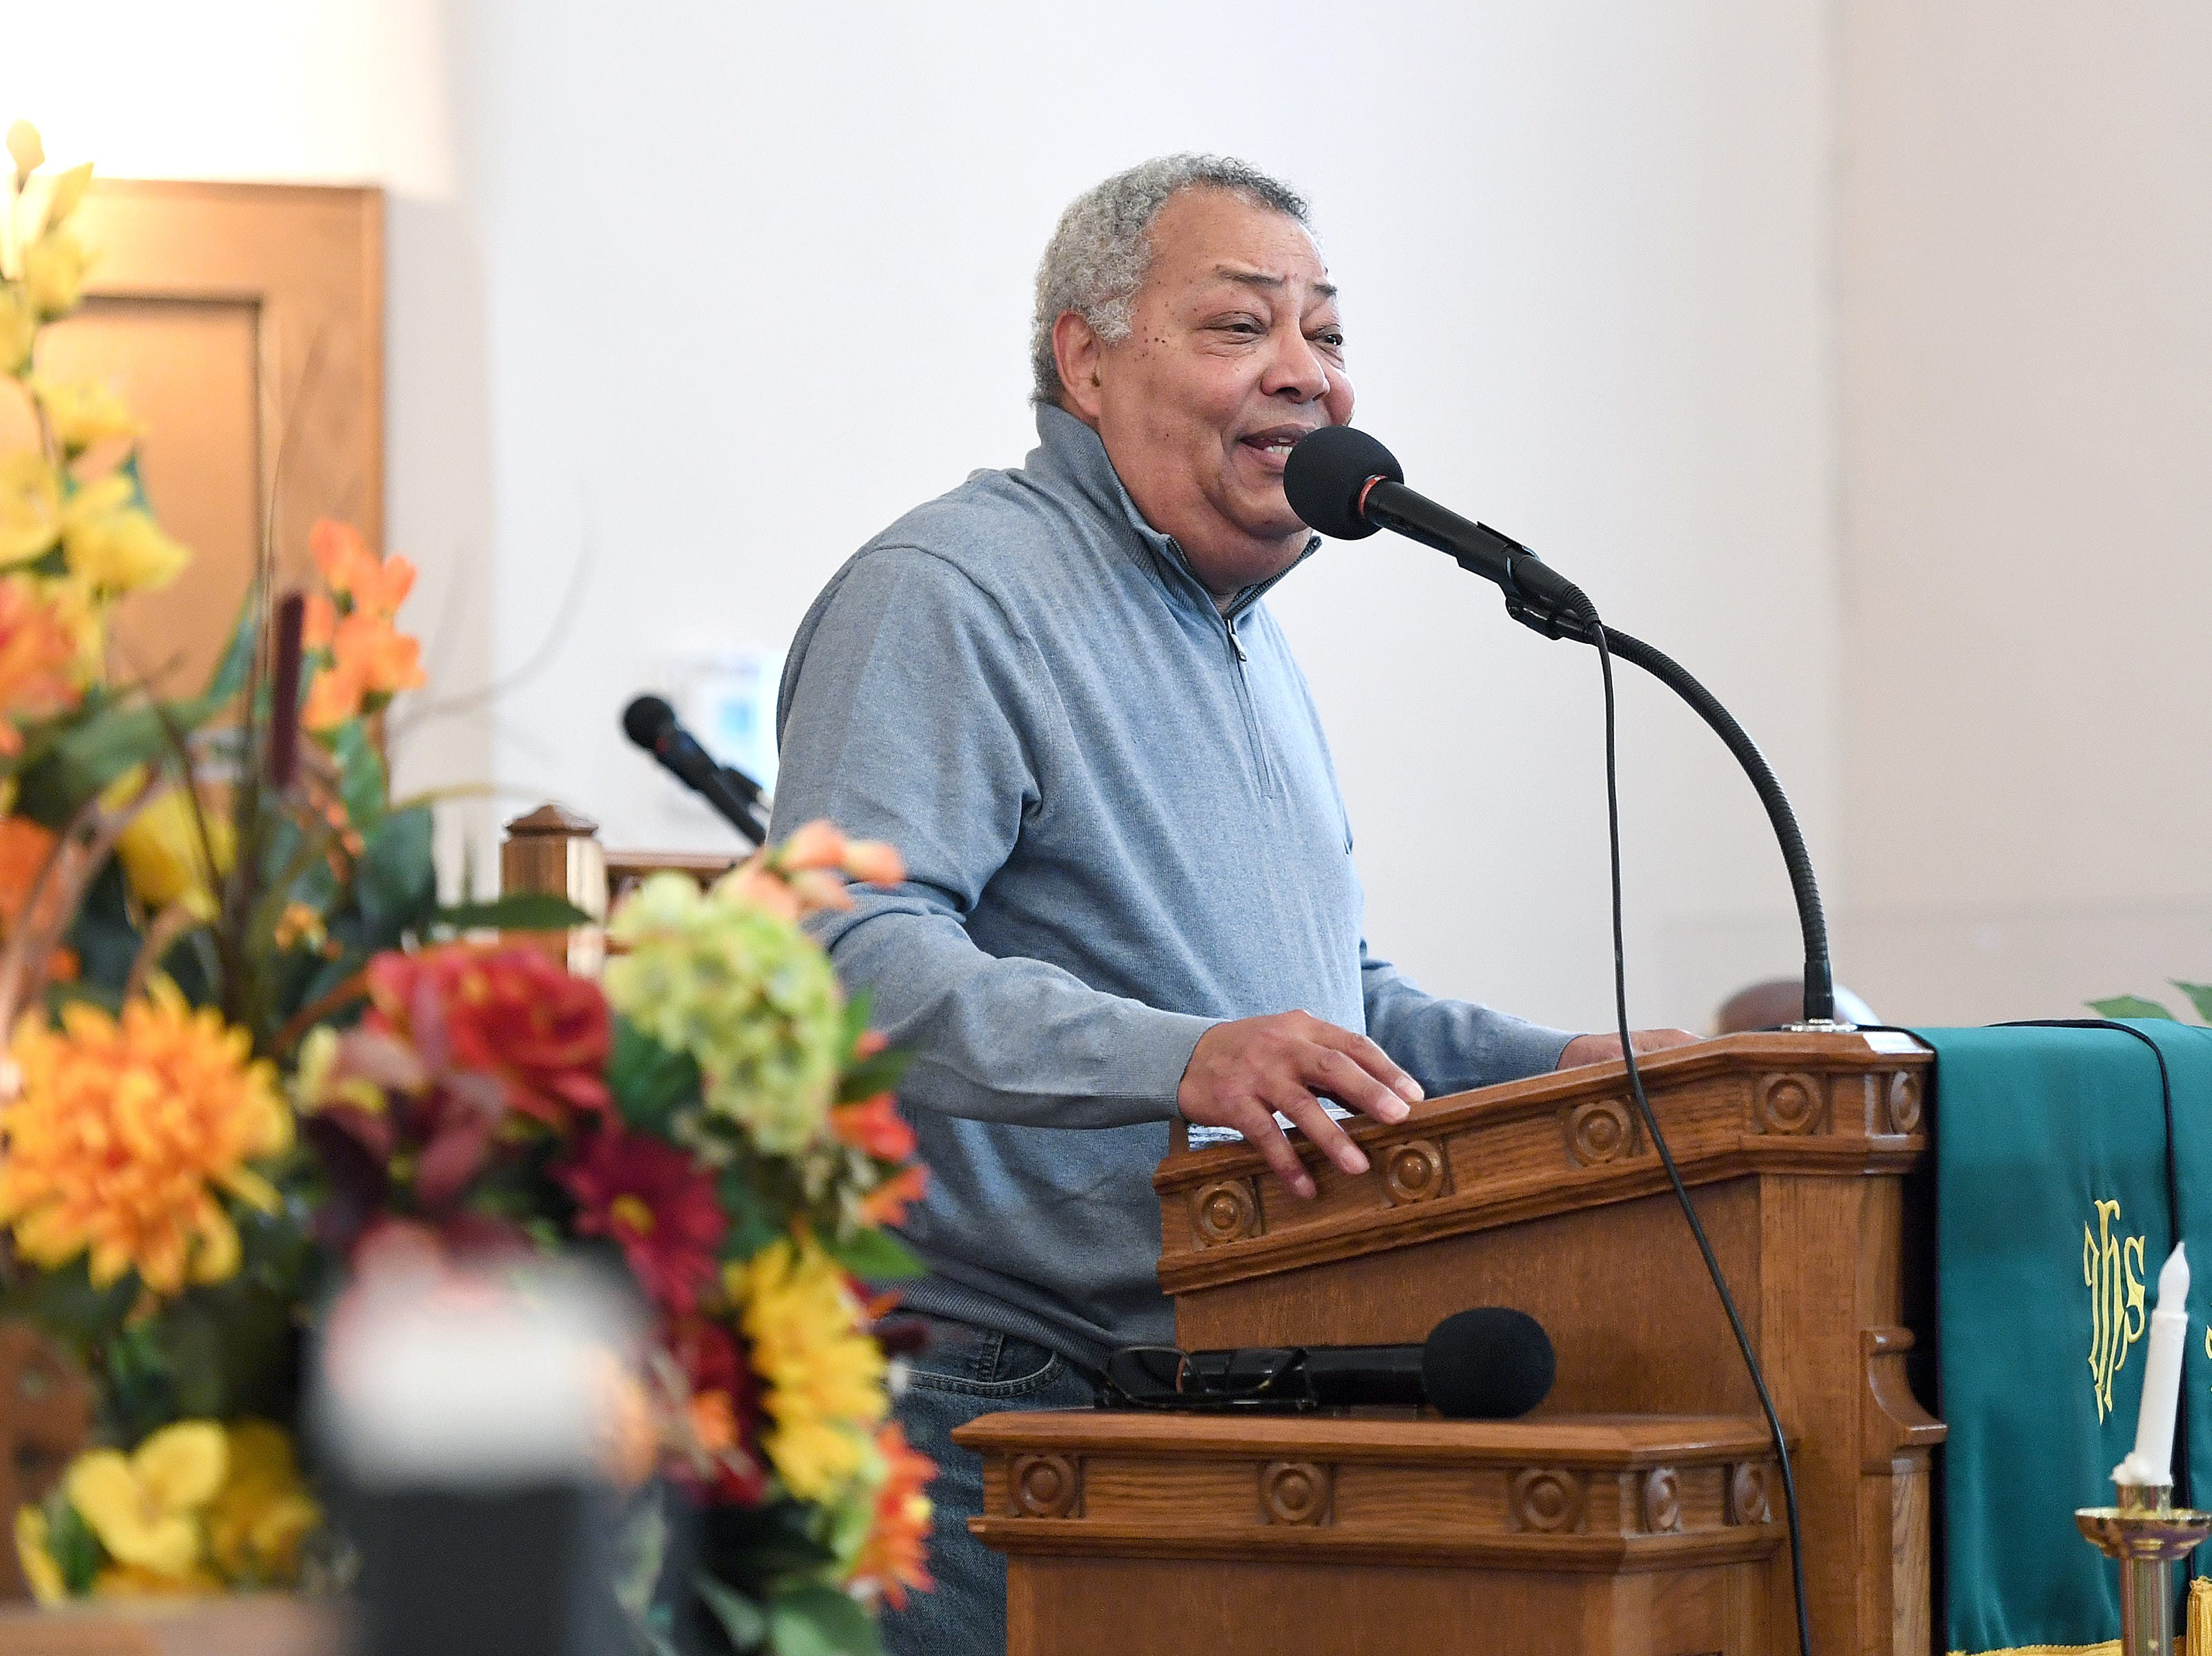 Buncombe County Commissioner Al Whitesides speaks to the crowd at St. James AME Church during the Dr. Martin Luther King, Jr. Peace March and Rally on Jan. 21, 2019.